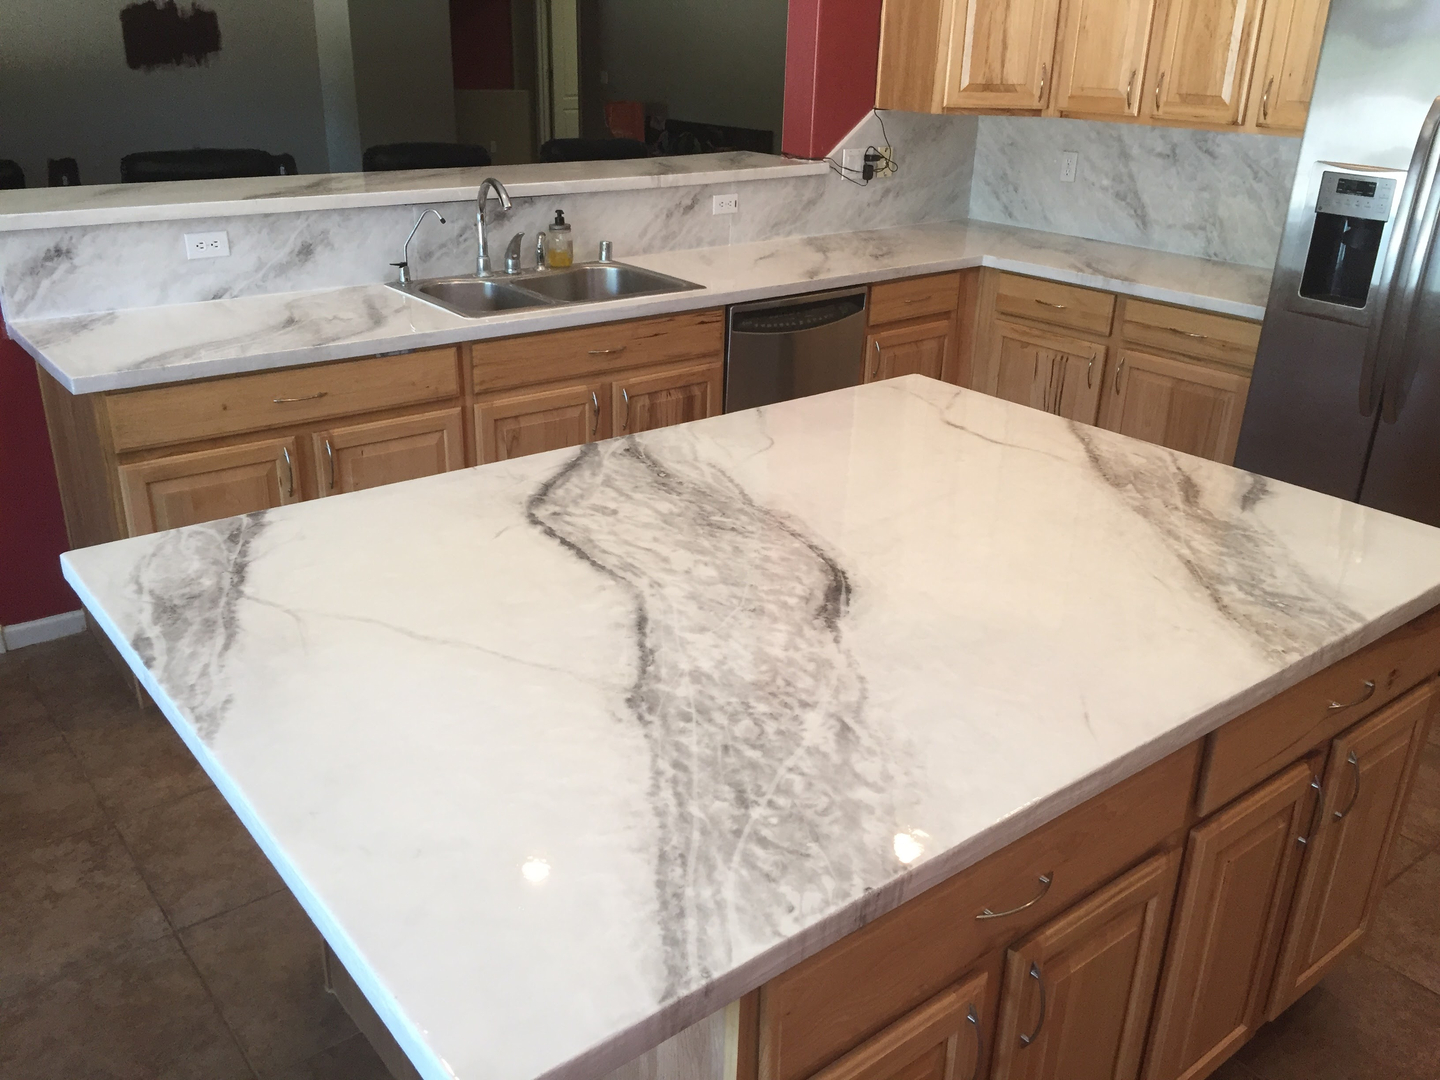 inspirations phoenix with and spring countertops trends express springs countertop well white cabinet also goes color colors picture what gallery pictures granite